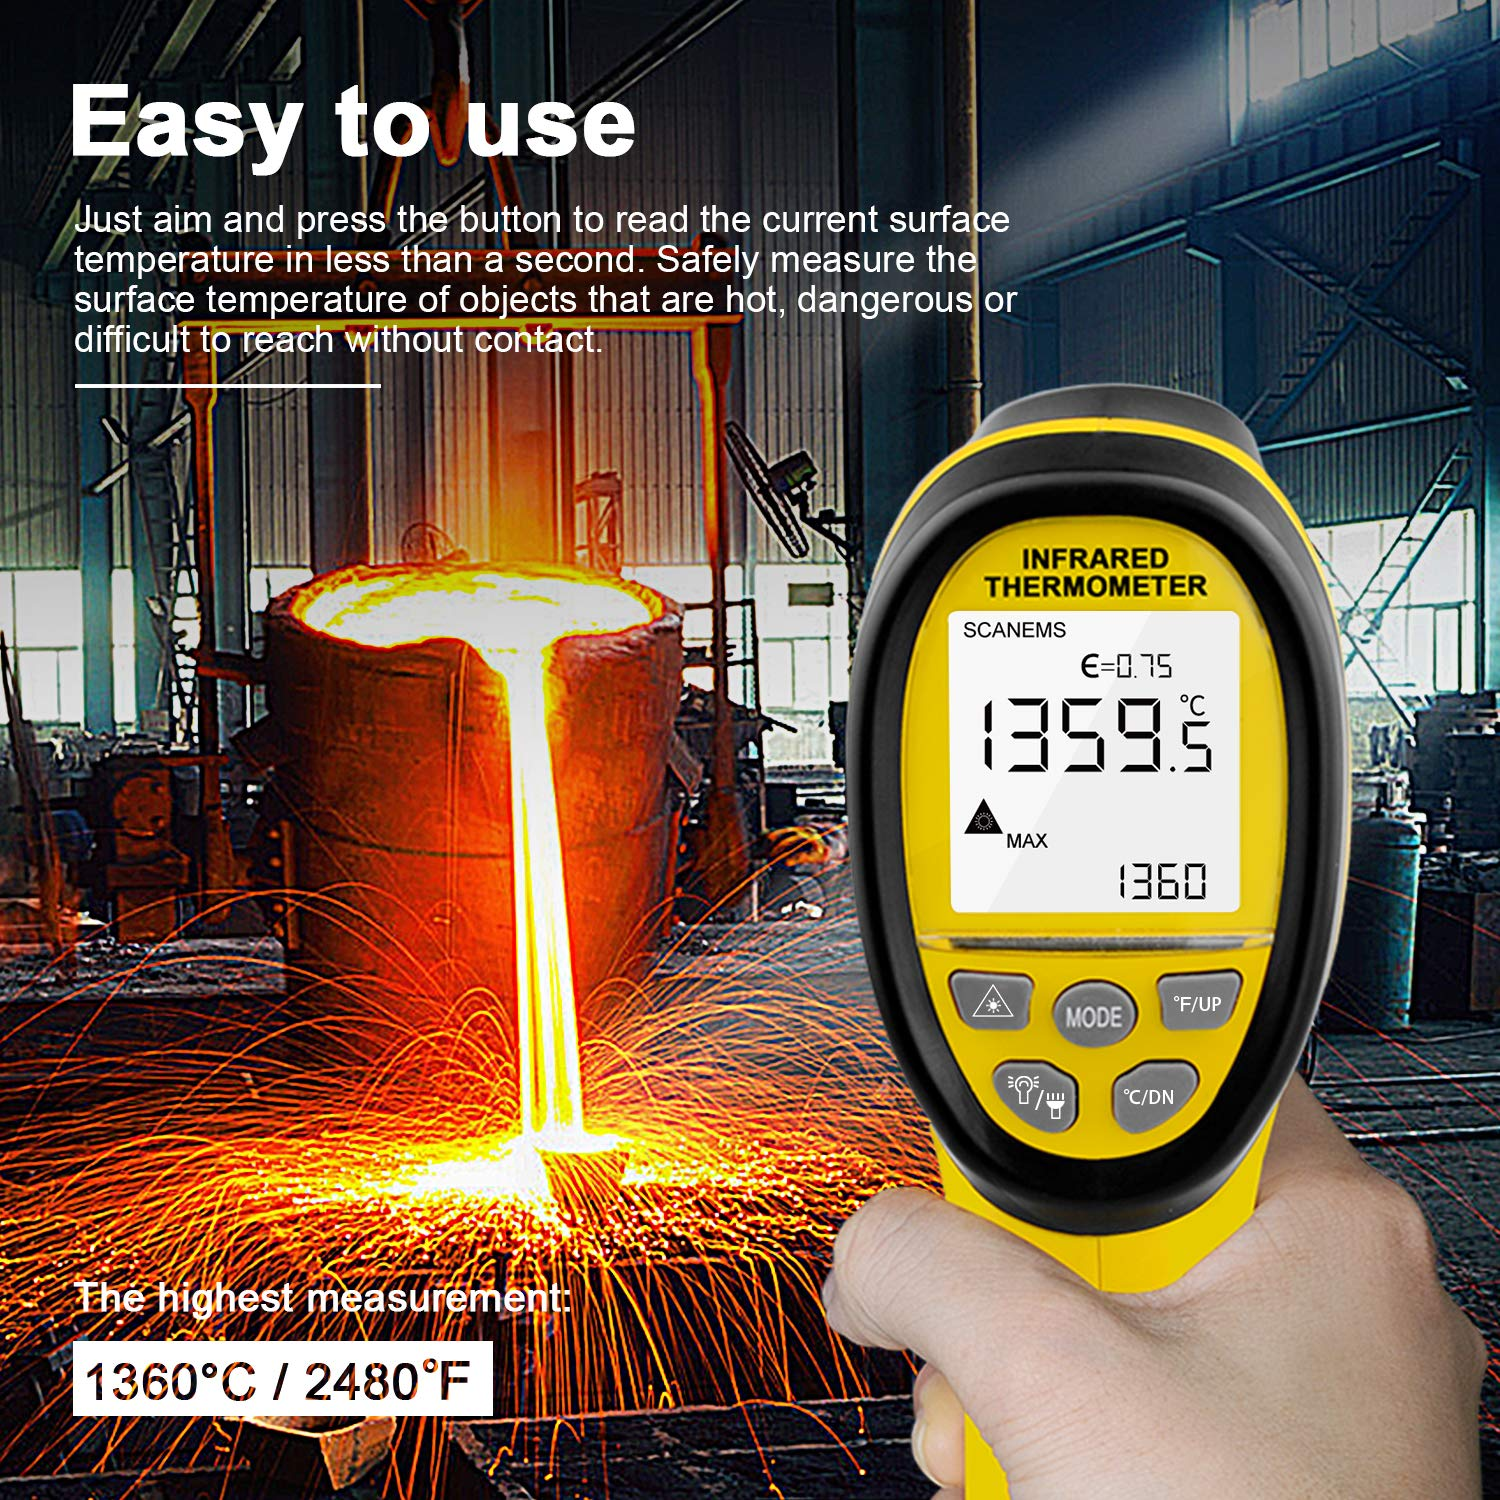 HOLDPEAK 985B Digital Infrared Thermometer Dual Laser Thermometer Non-Contact Temperature Gun -58℉~2480℉ (-50℃~1360℃) with Data Hold & Adjustable Emissivity for Forge Melting Furnace Kilns Industry by H HOLDPEAK (Image #6)